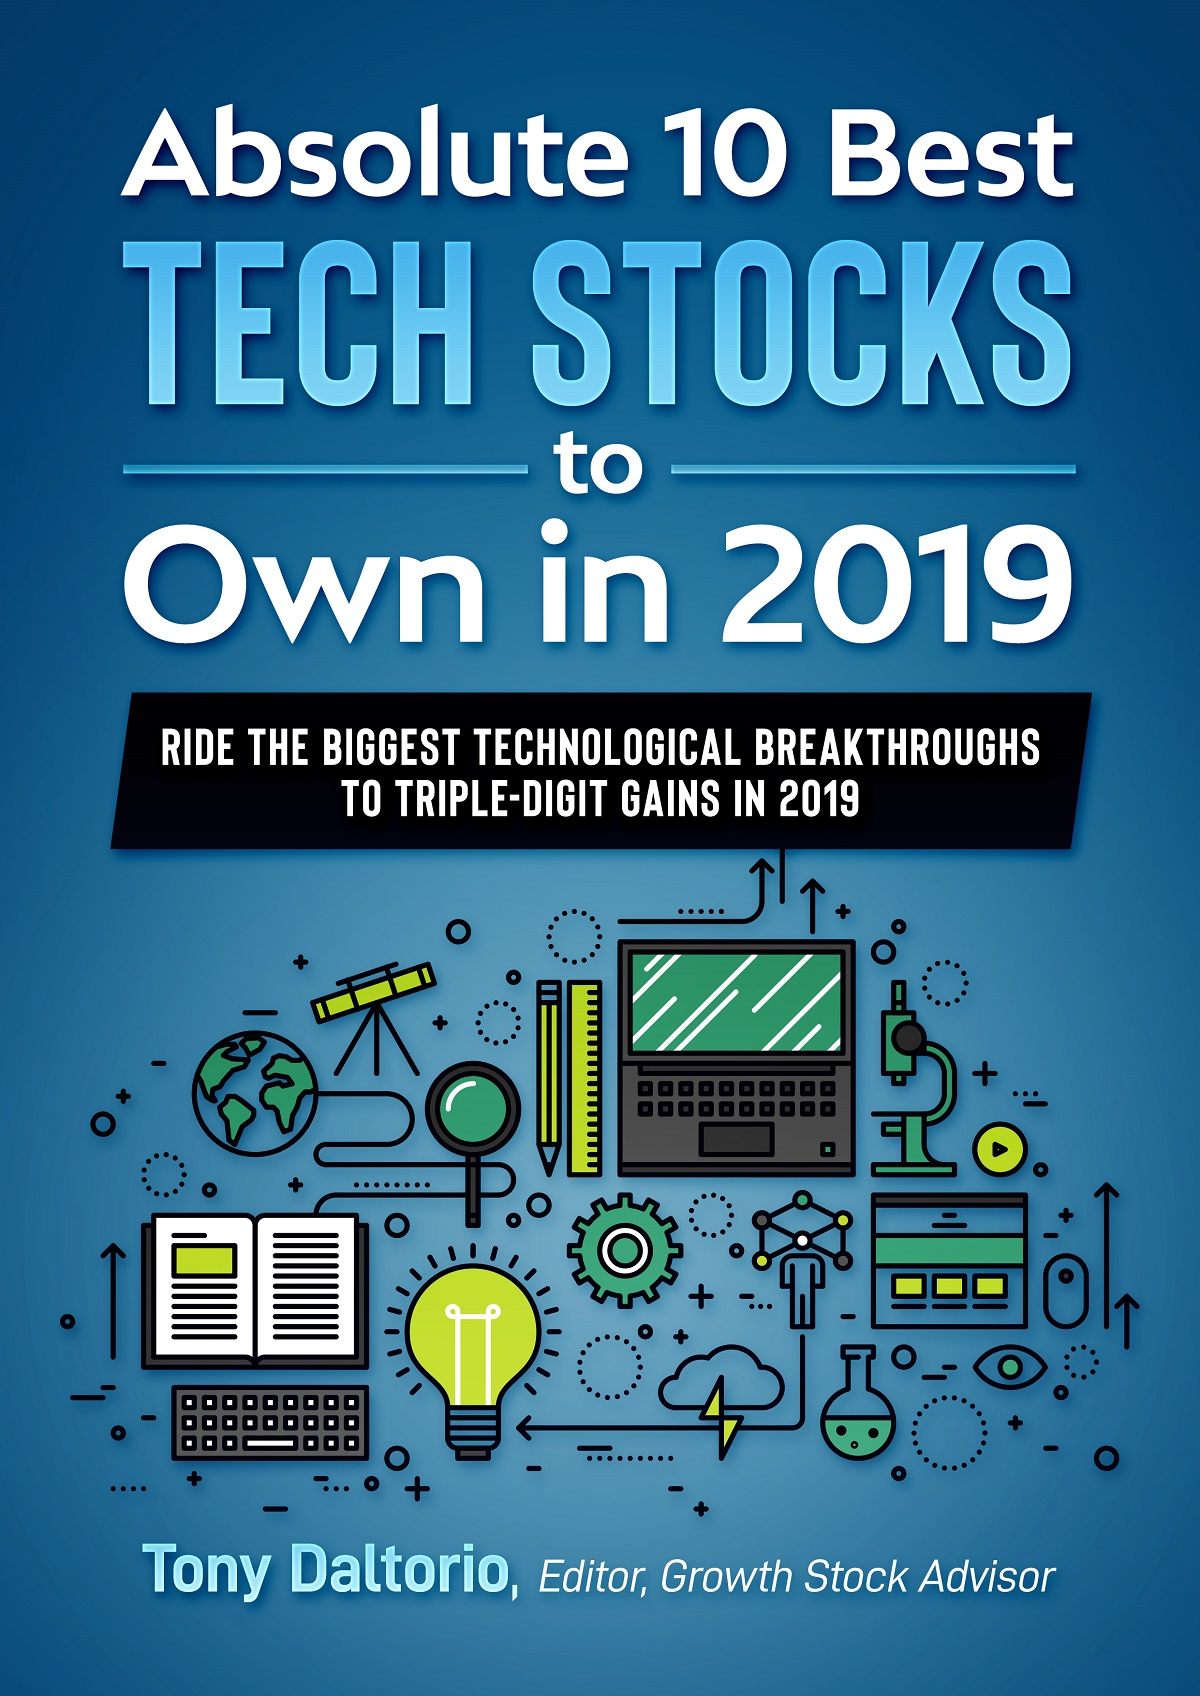 [NEW REPORT] Absolute 10 Best Tech Stocks to Own in 2018